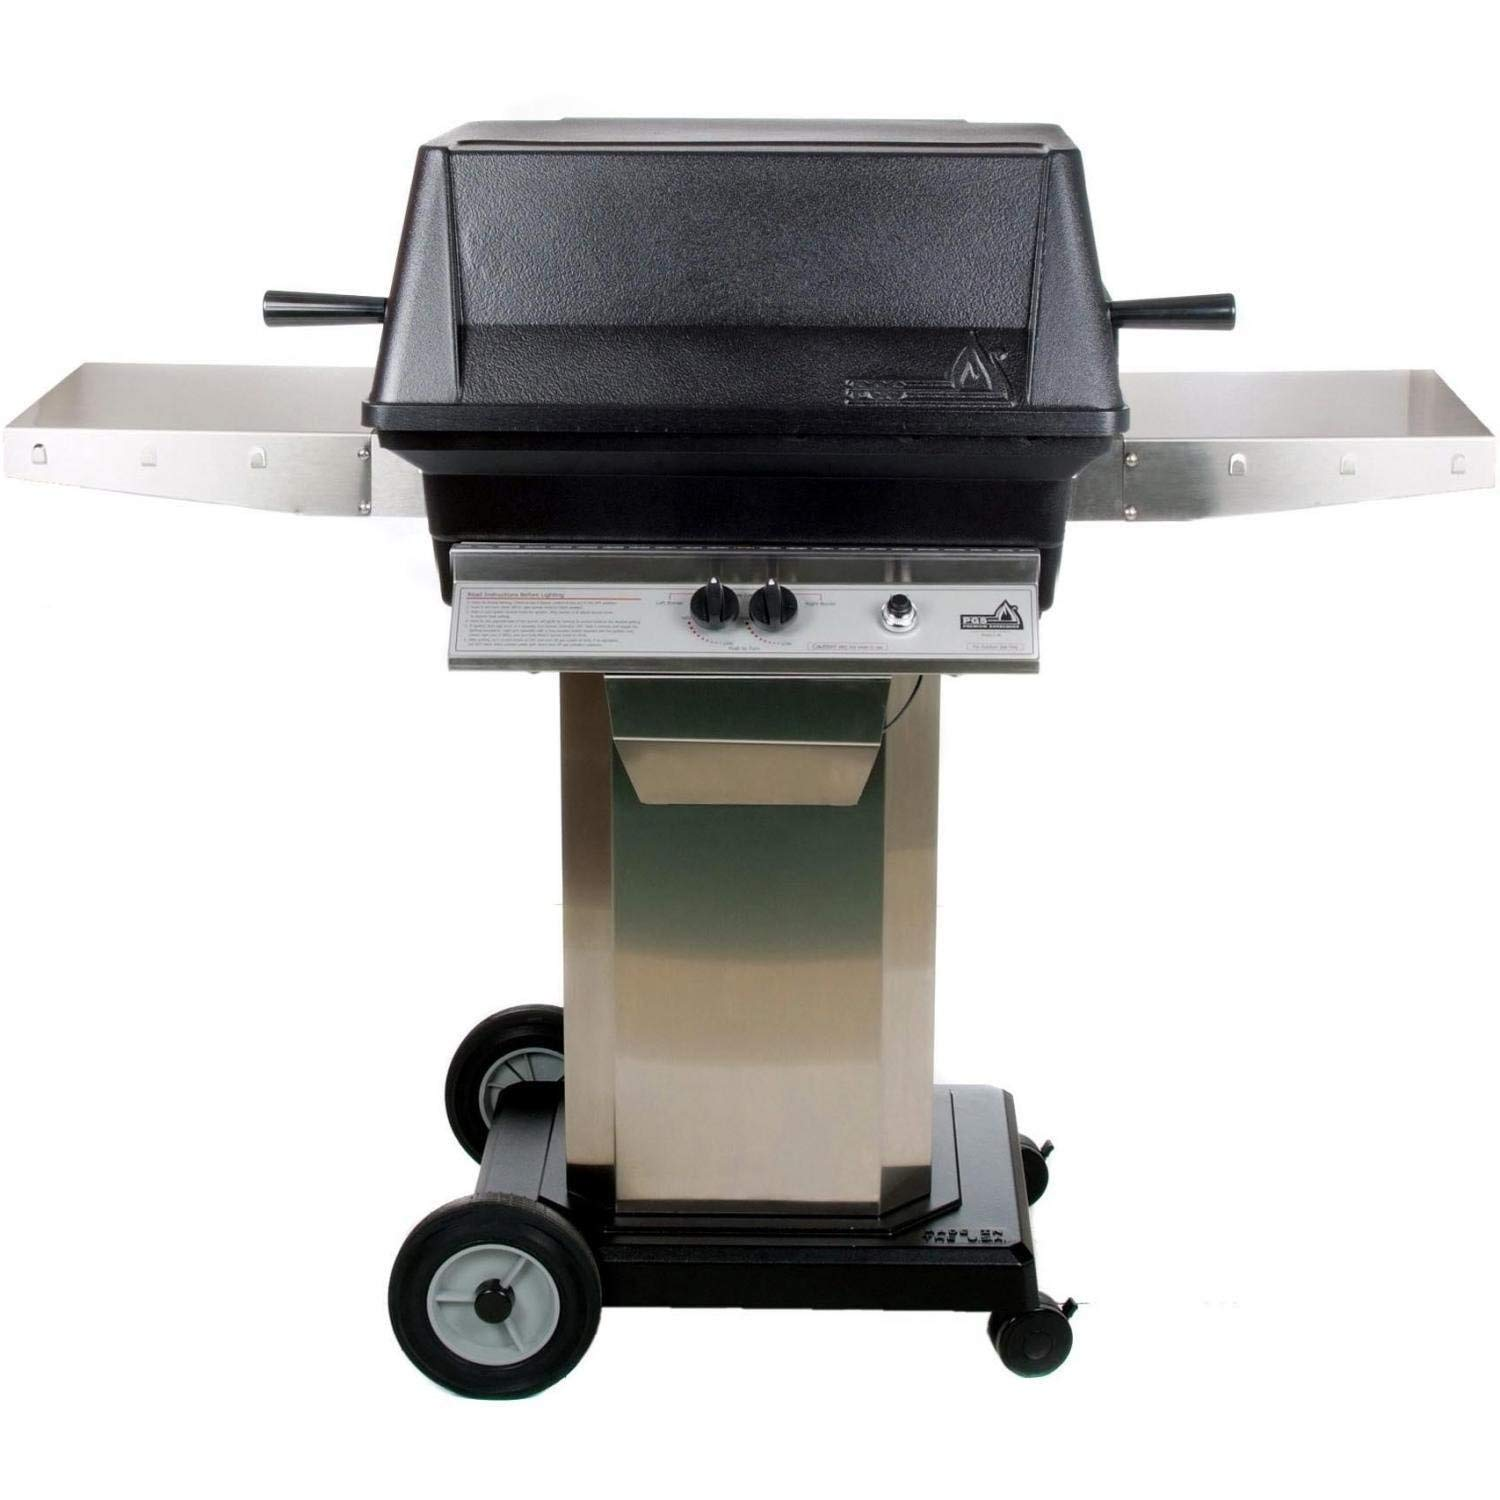 Pgs A40 Cast Aluminum Freestanding Natural Gas Grill On Stainless Steel Portable Pedestal Base